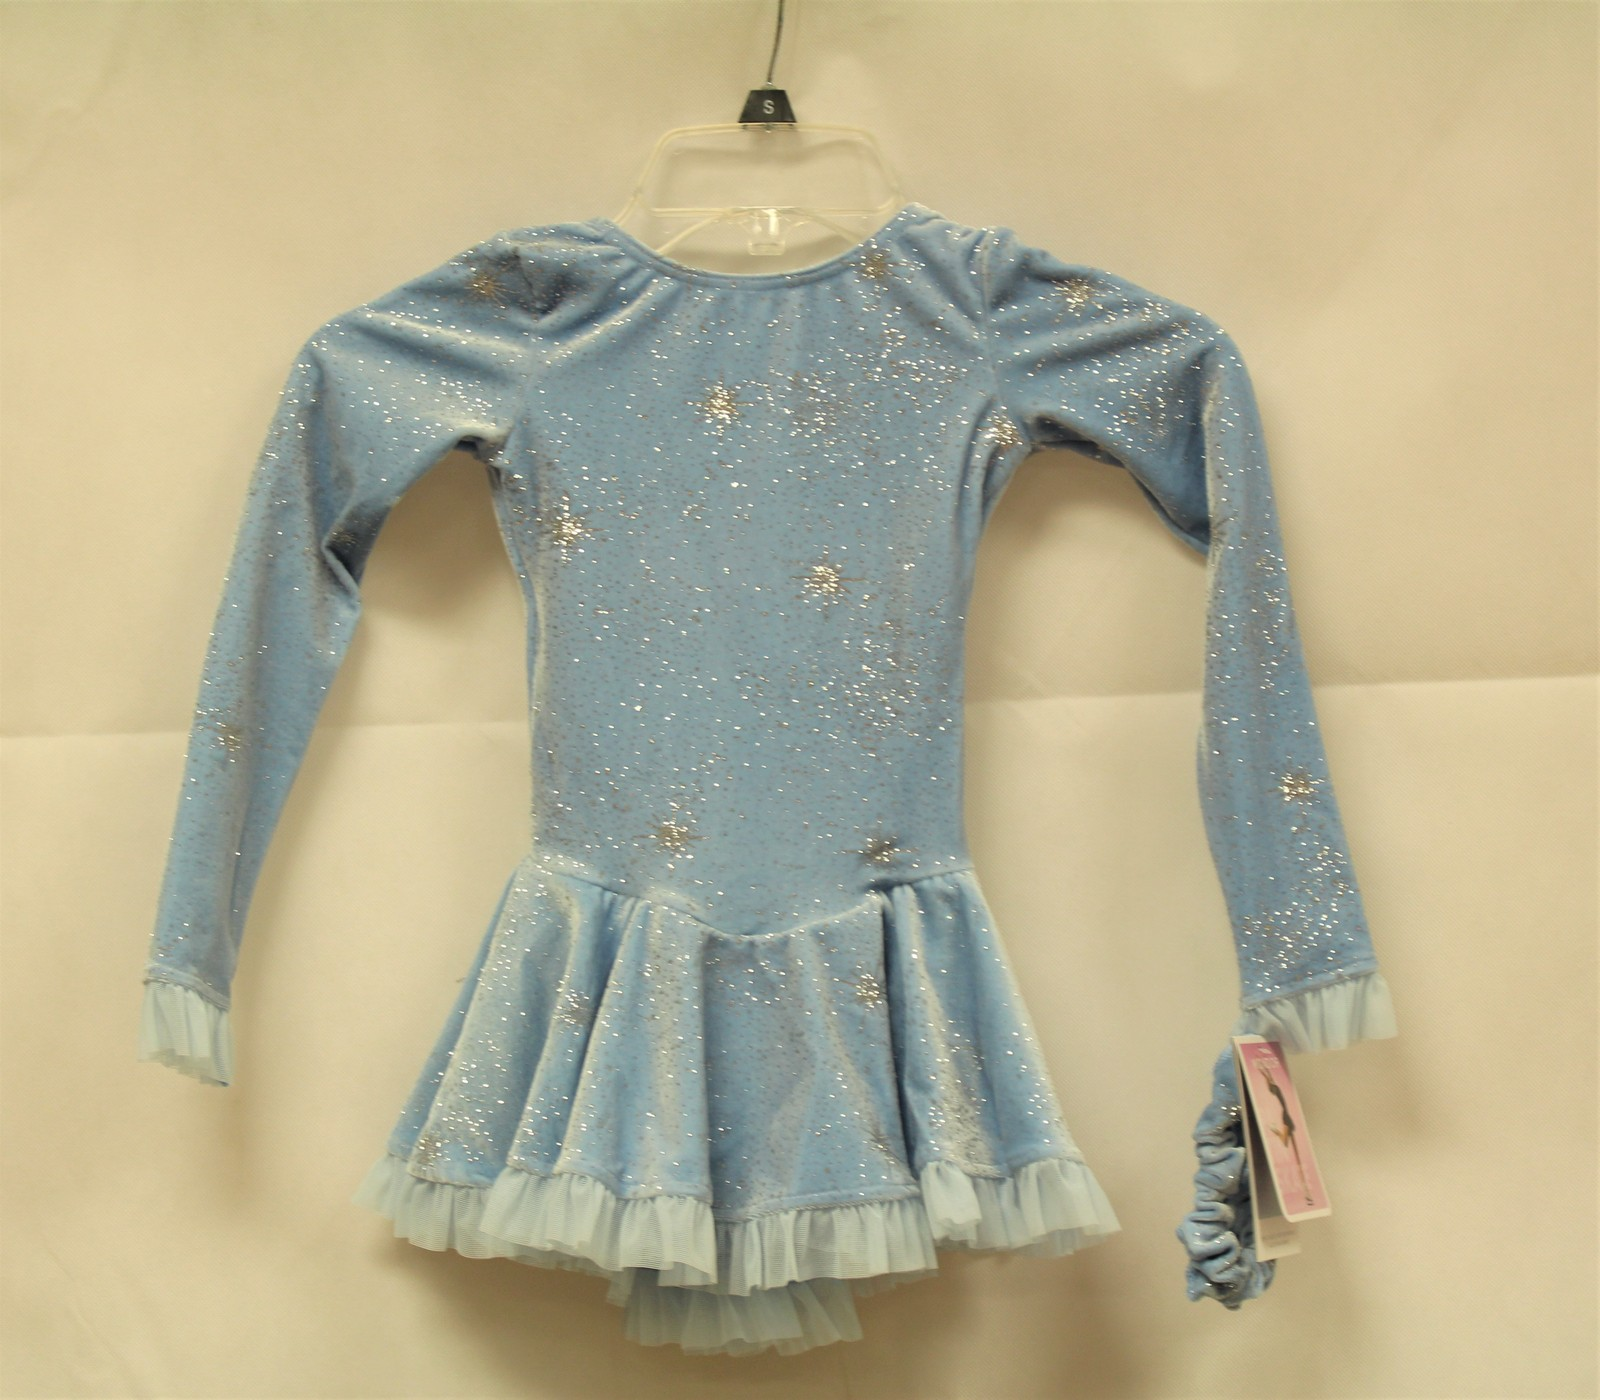 Primary image for Mondor Model 2739 Born to Skate Skating Dress - Iced Blue Size Adult Small